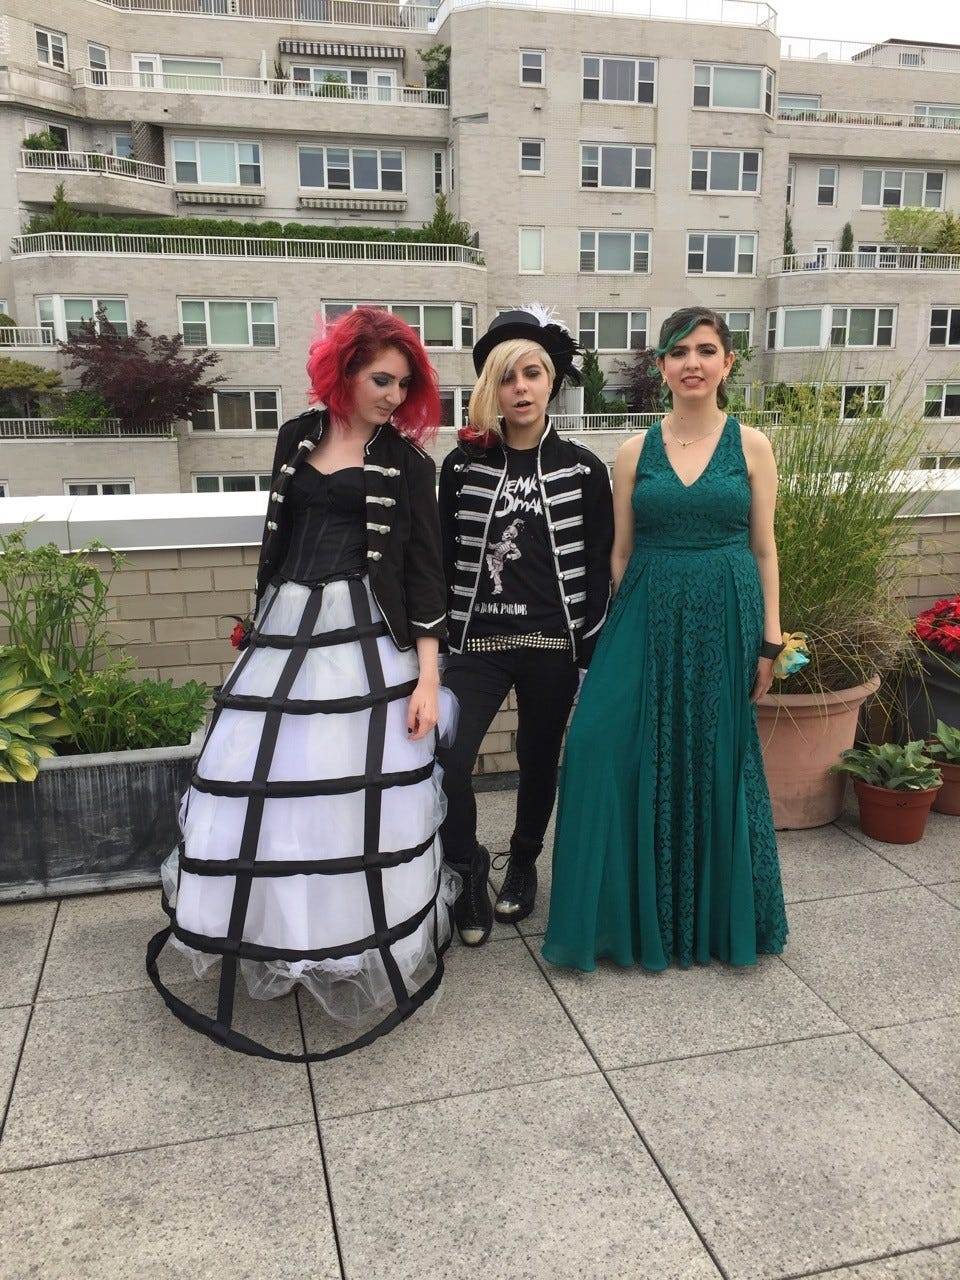 c9bc741f54 How prom fashion has evolved from ubiquitous gowns to include DIY and  gender fluid options